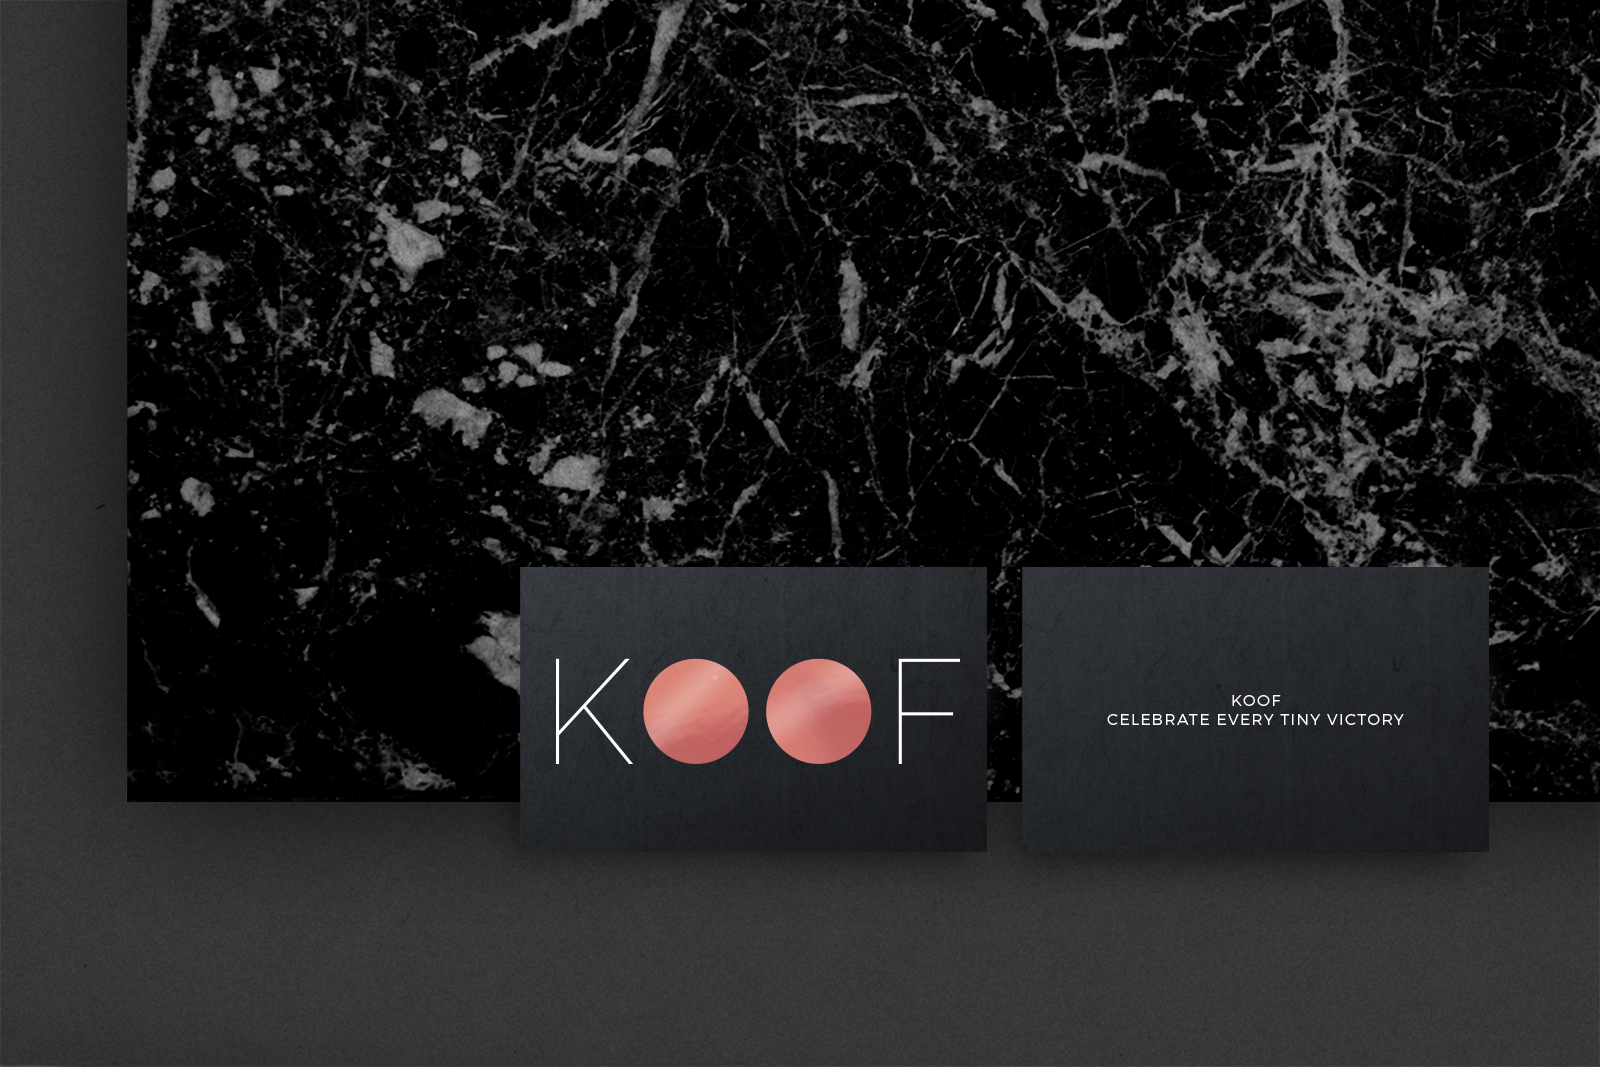 koof_businesscard-1